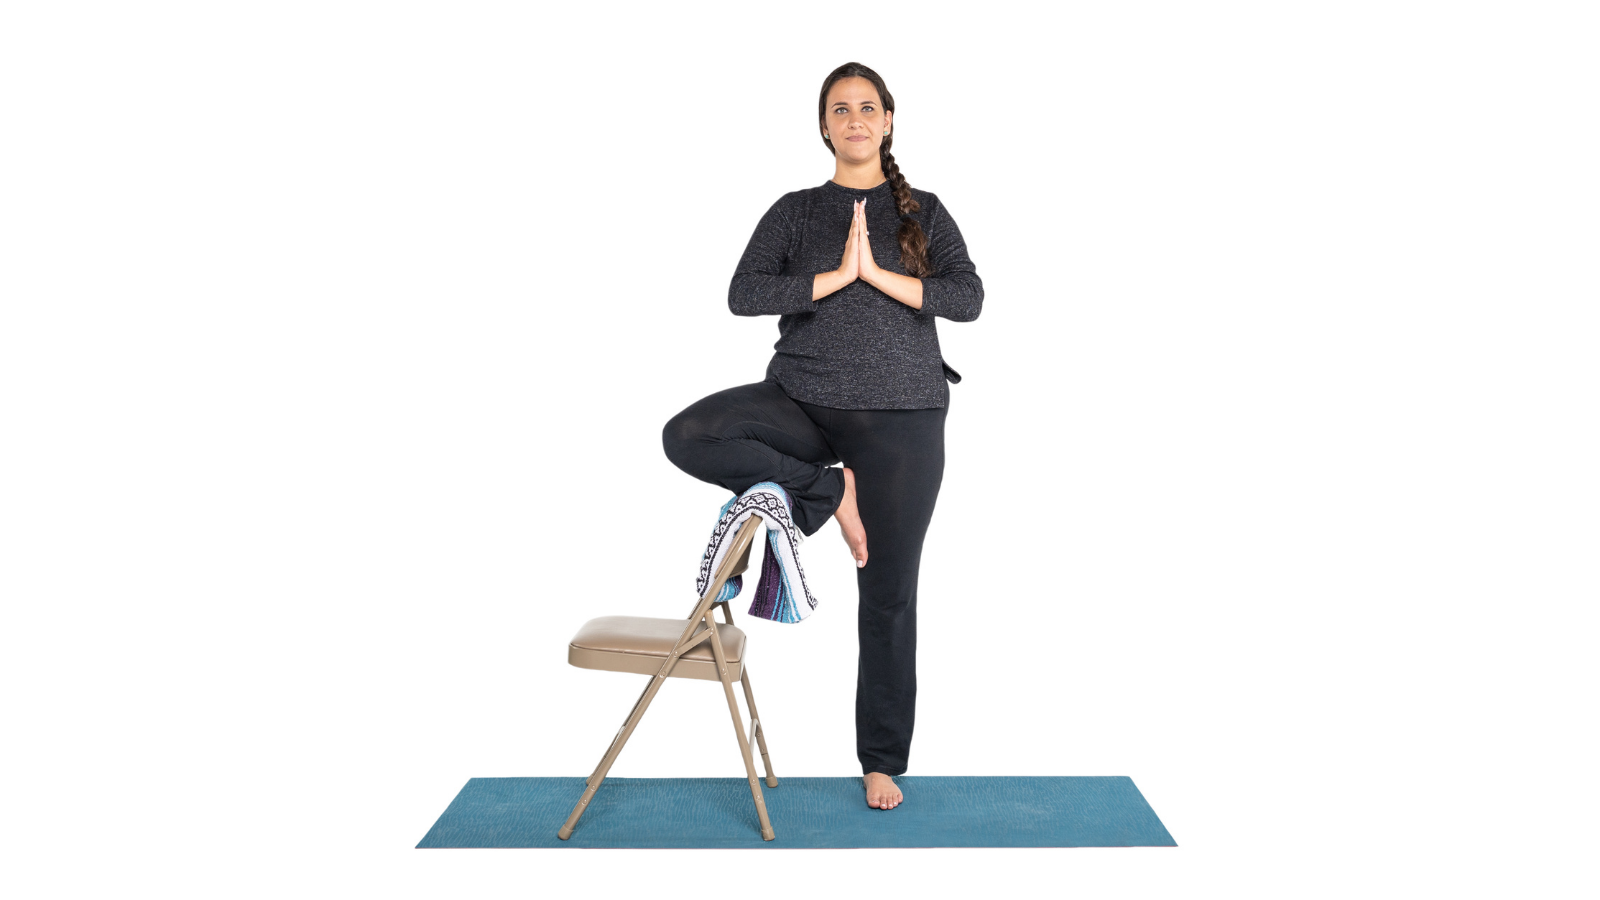 Tree Pose or Vrksasana variation using the support of a chair as a prop